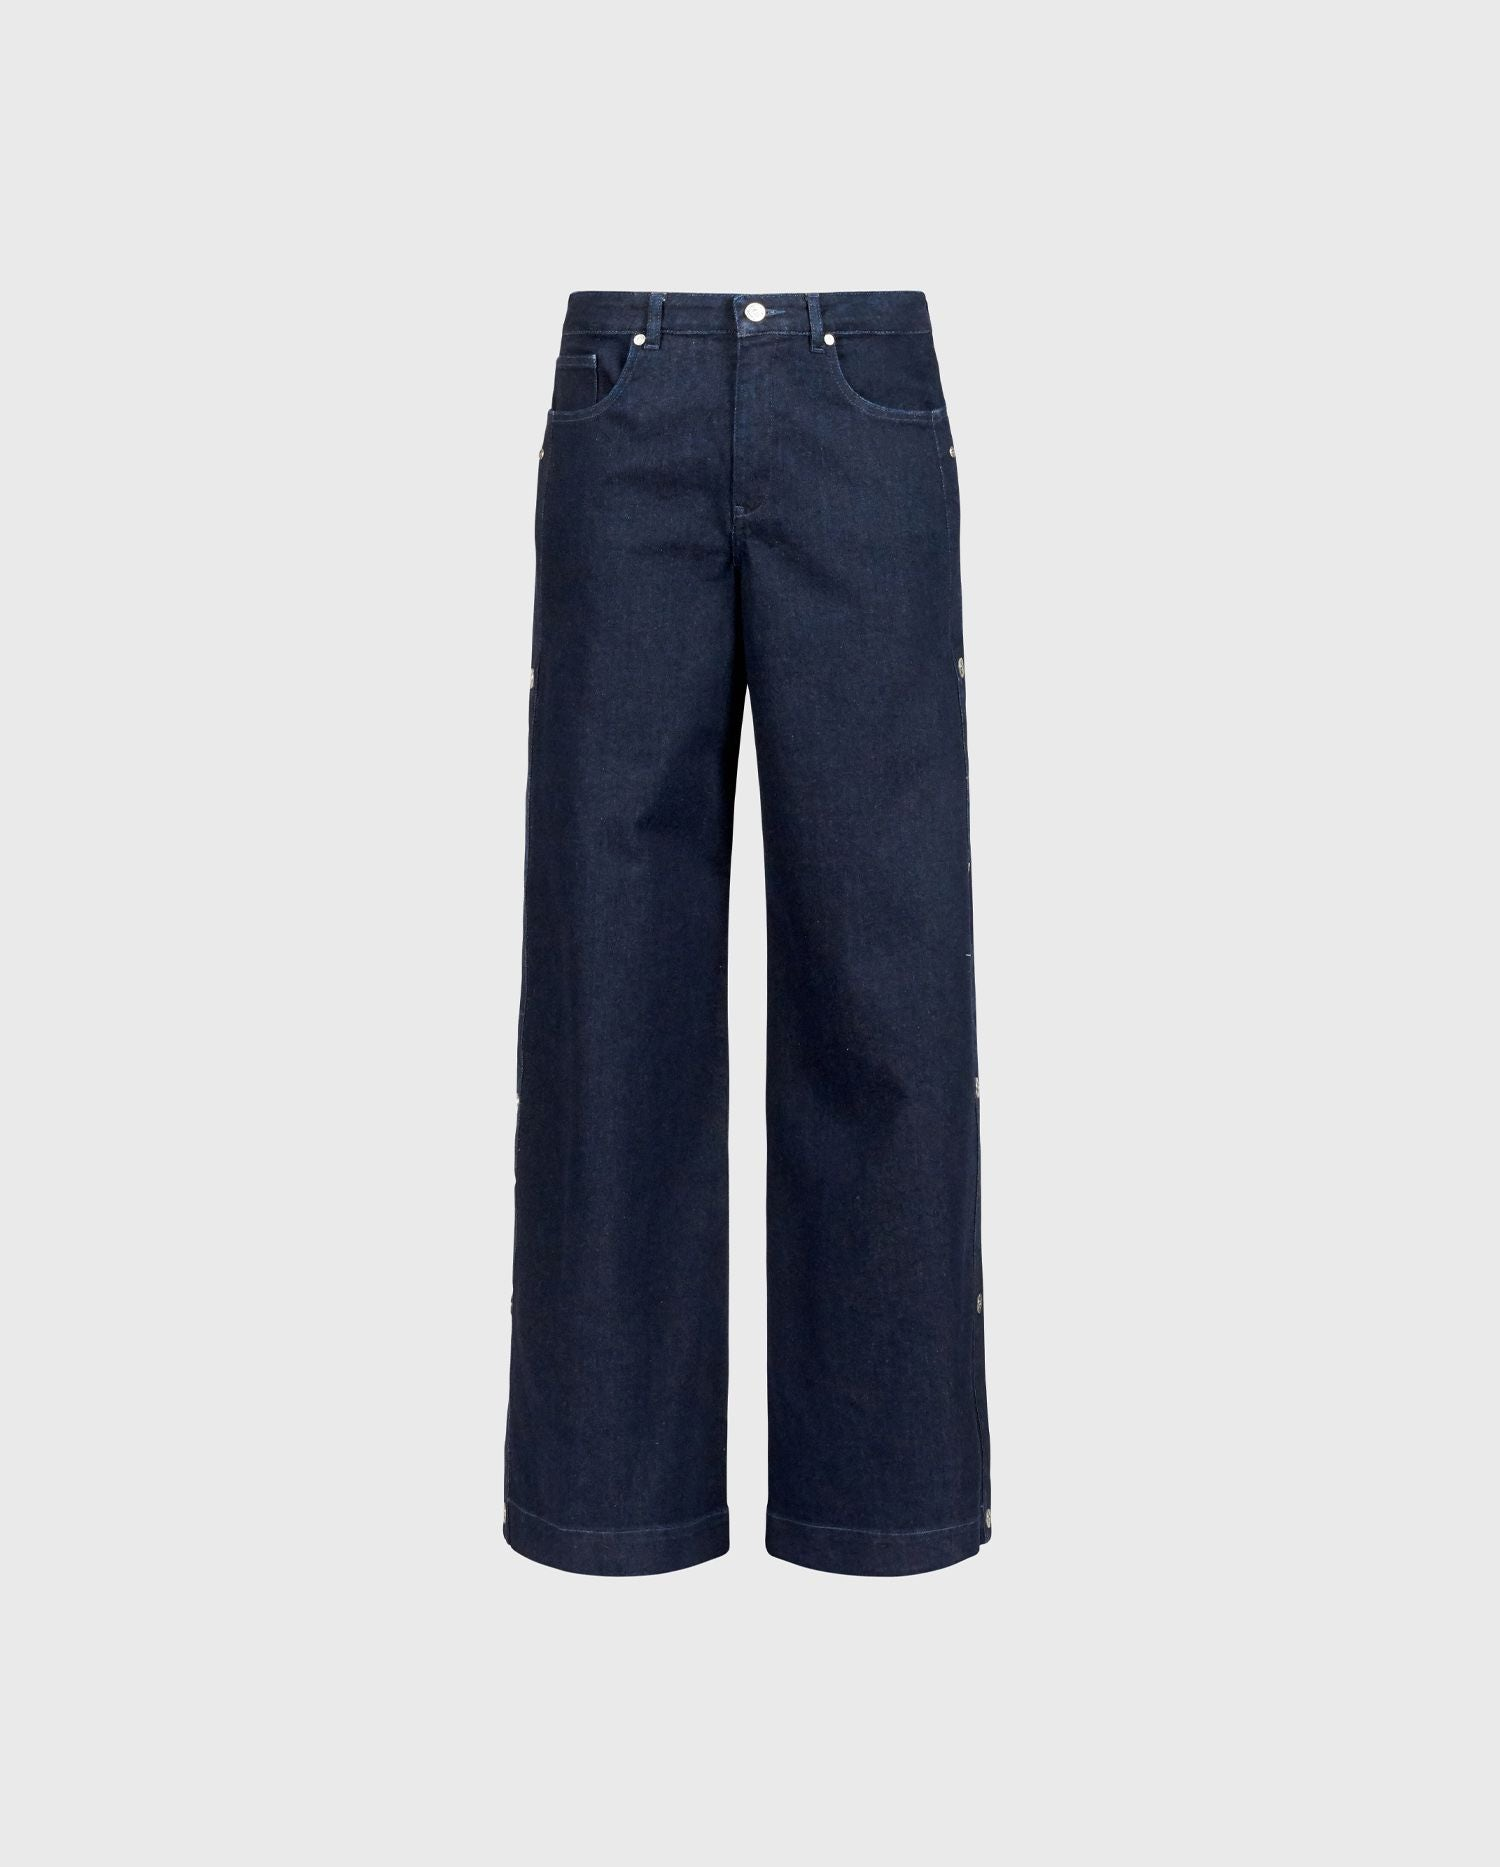 ANNE FONTAINE: PRESLEY - P20 Jeans: Dark washed jeans with snaps along the side